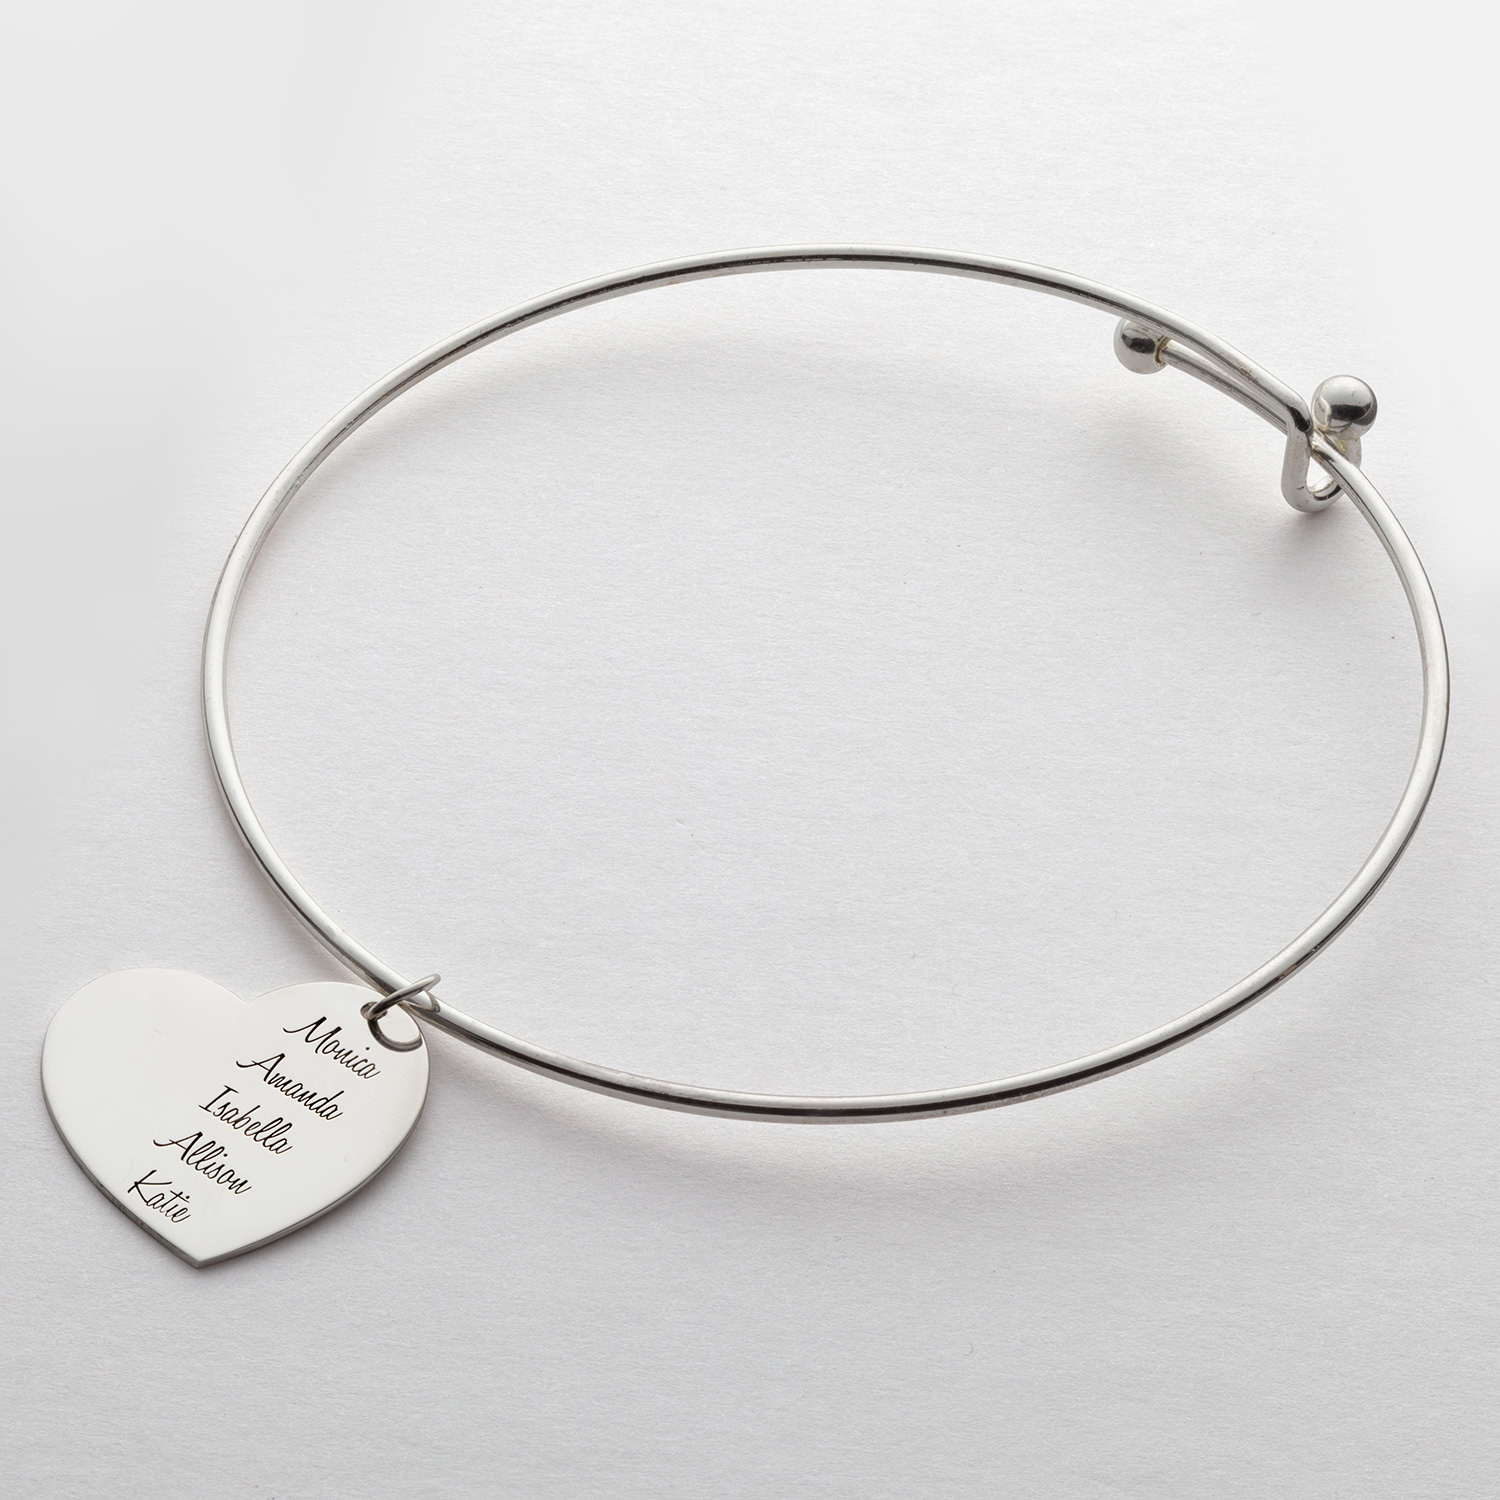 Expandable Charm Bracelets: Expandable Bangle Bracelet With Sterling Silver Family